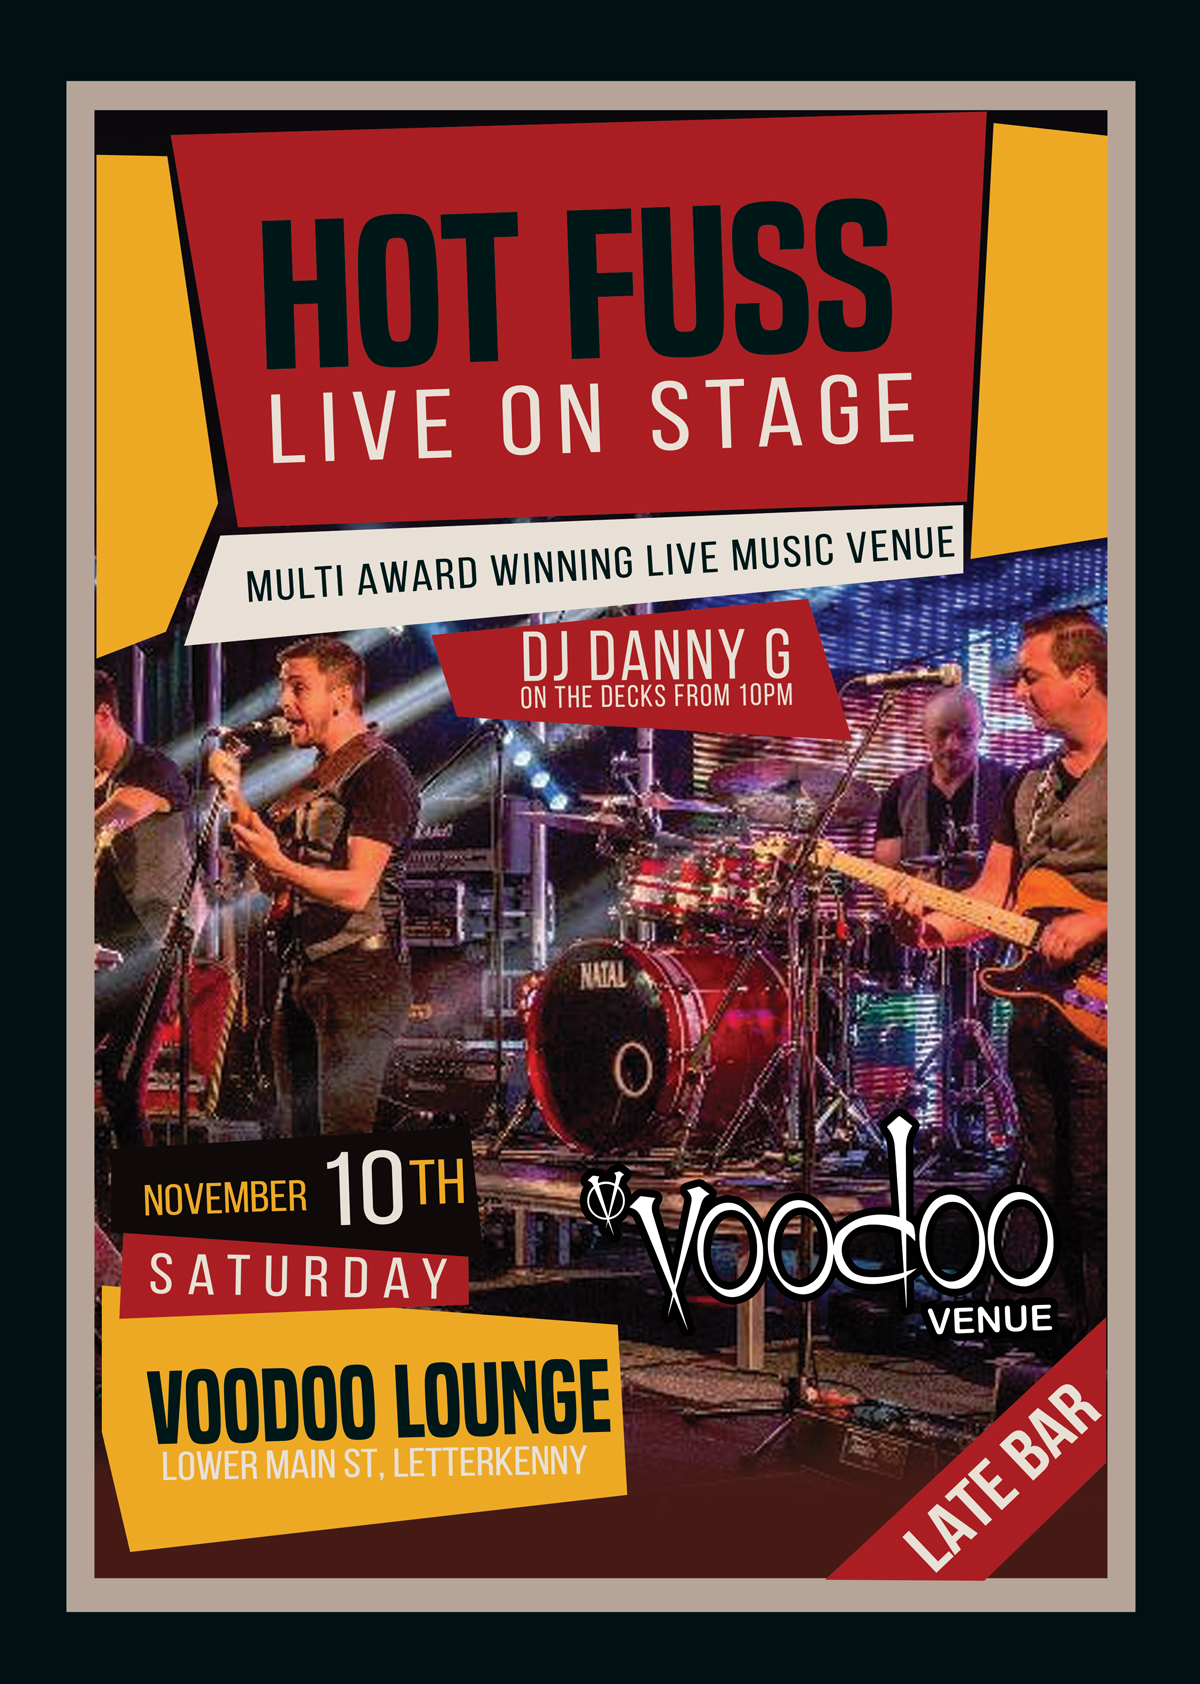 VOODOO-VENUE---hot-fuss-sat-nov-10-2018.jpg